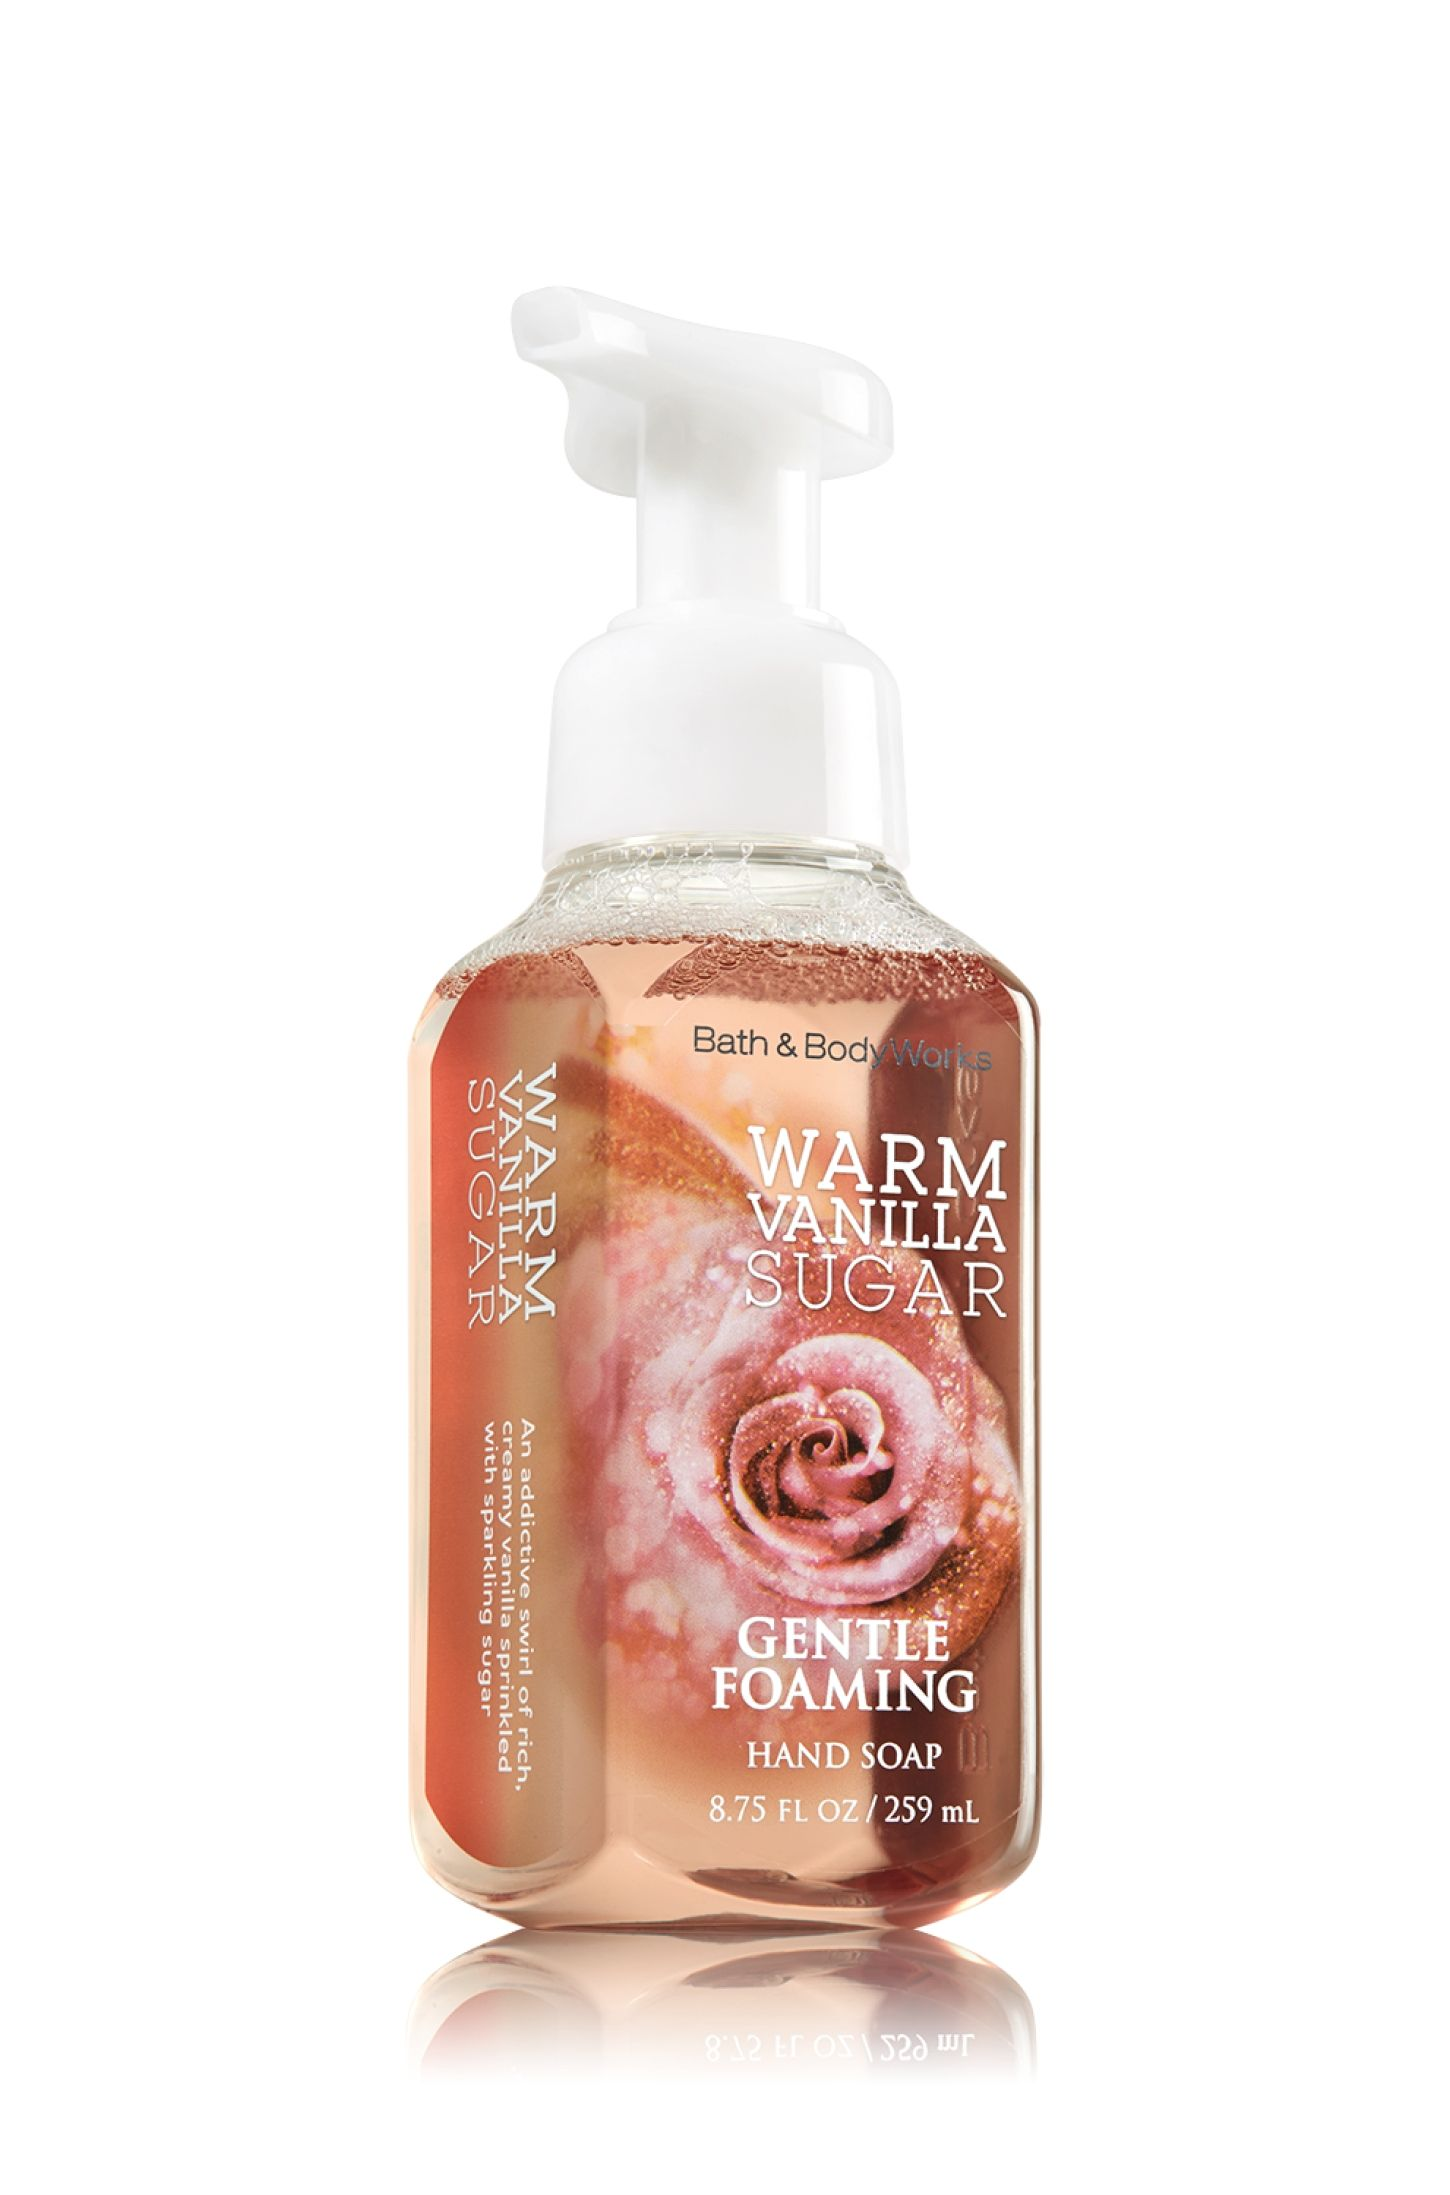 Warm Vanilla Sugar Gentle Foaming Hand Soap Soap Sanitizer